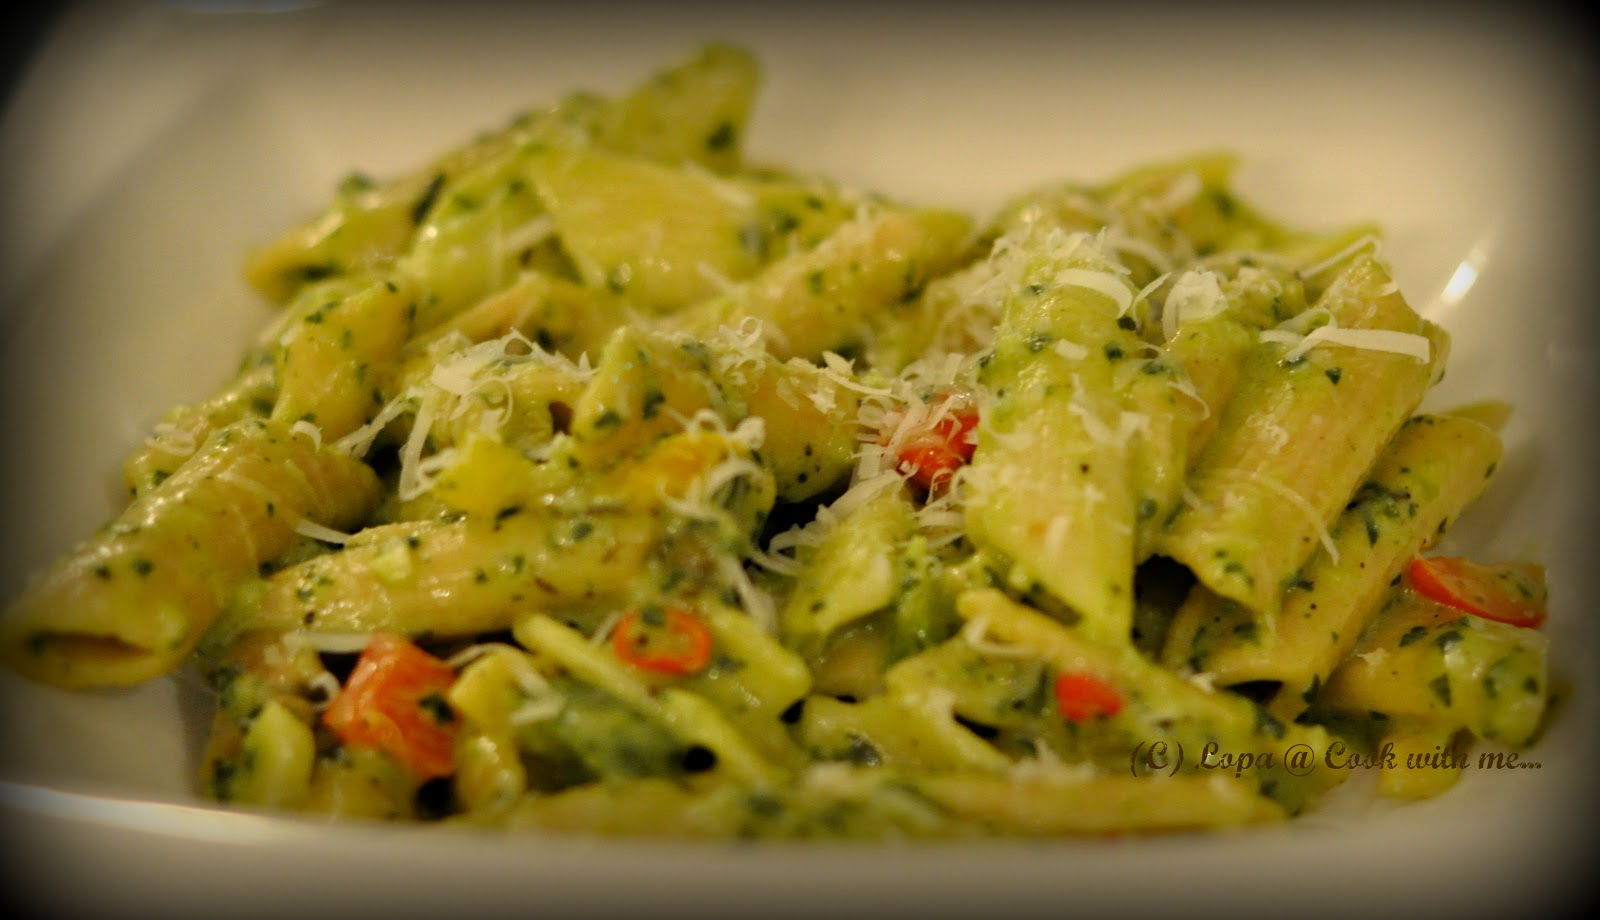 Cook with me veg pasta in creamy spinach sauce for Creamy spinach pasta bake